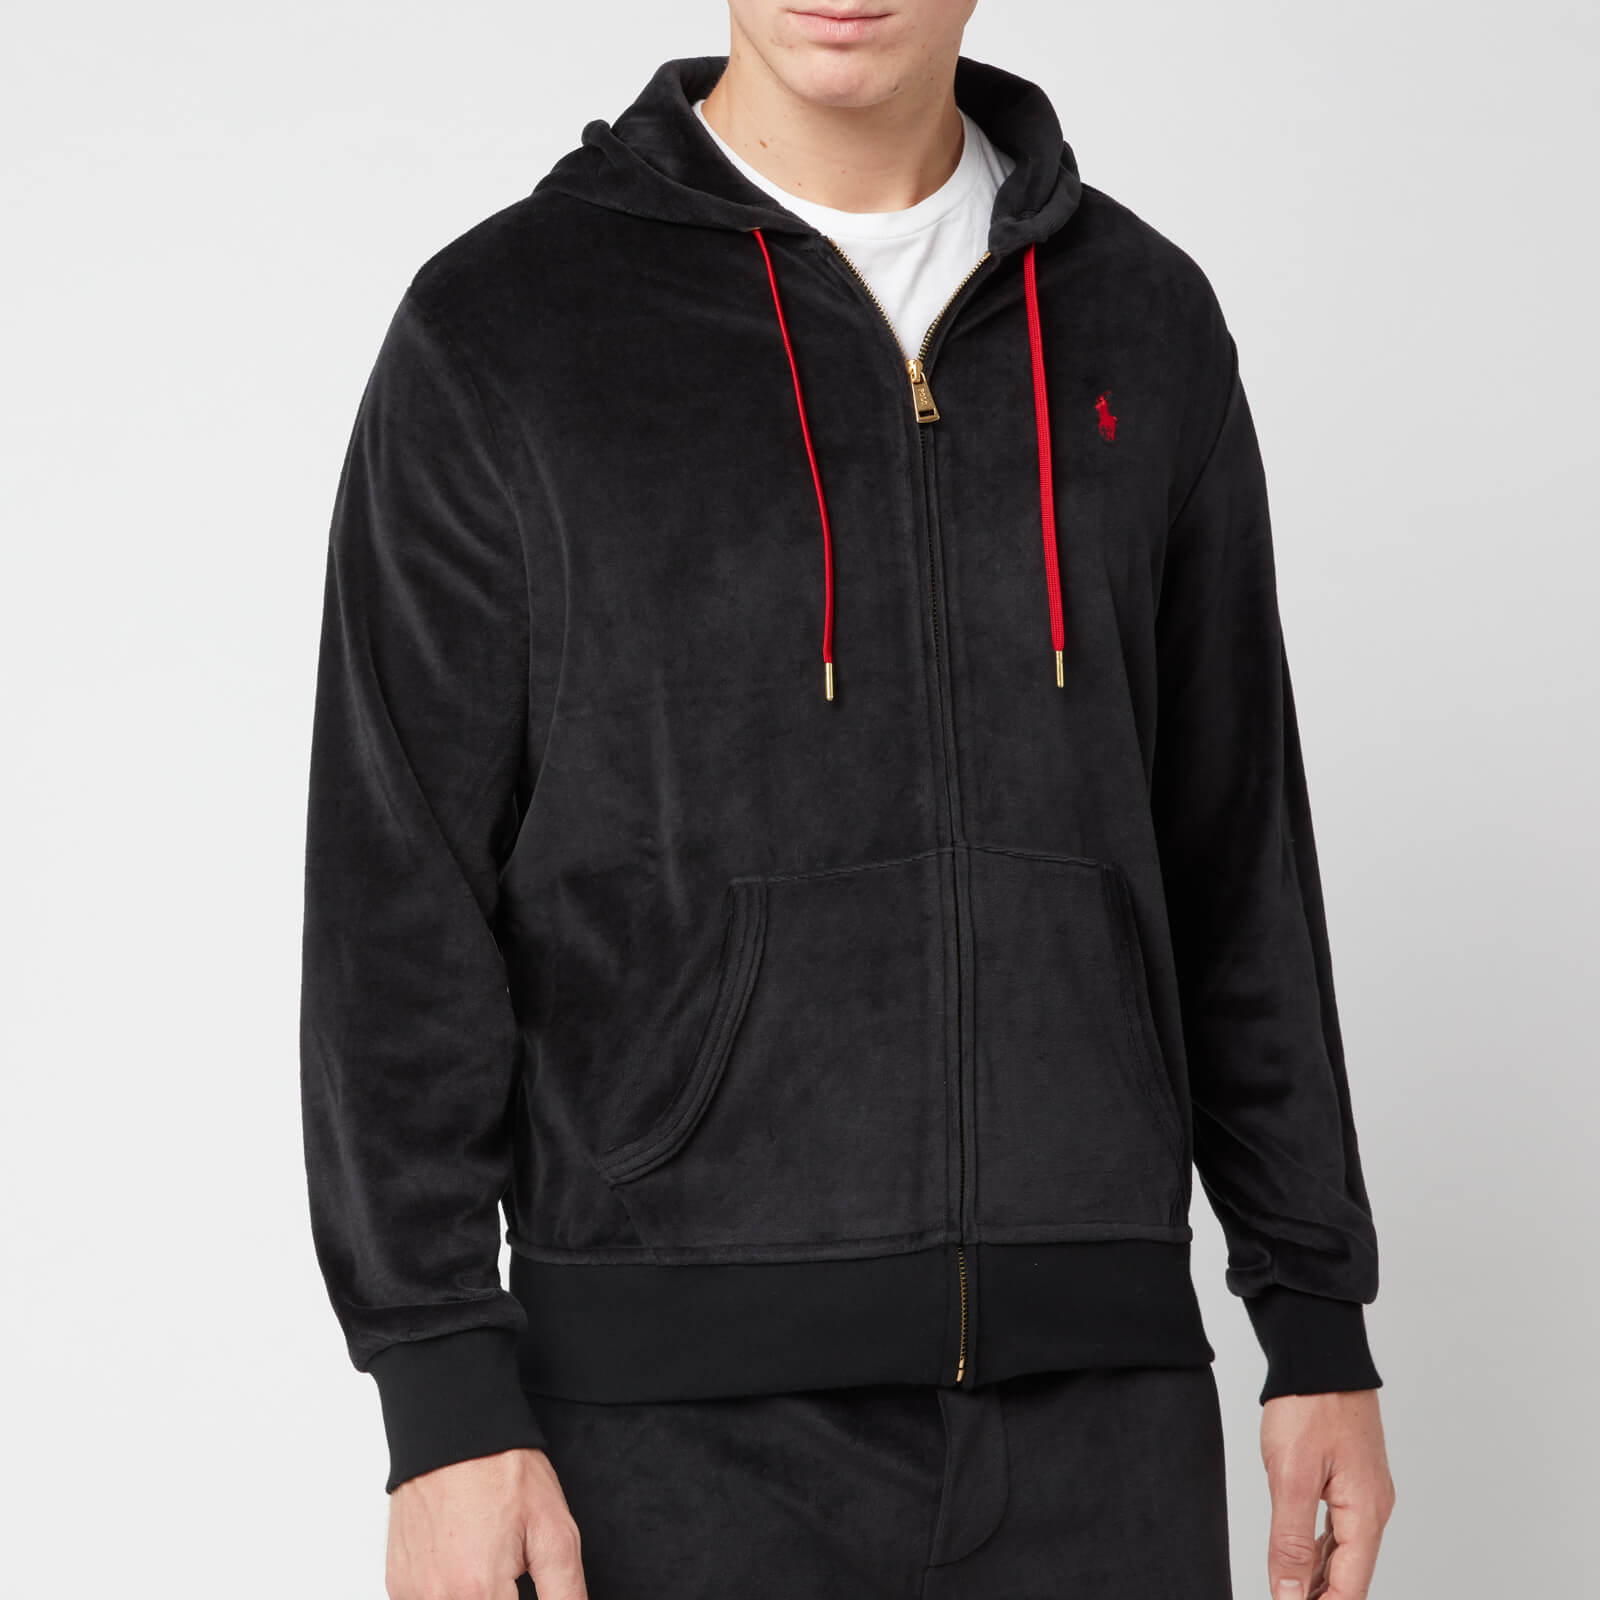 Lauren Black Velour Hoody Polo Zip Ralph Men's SpUMjqGLVz